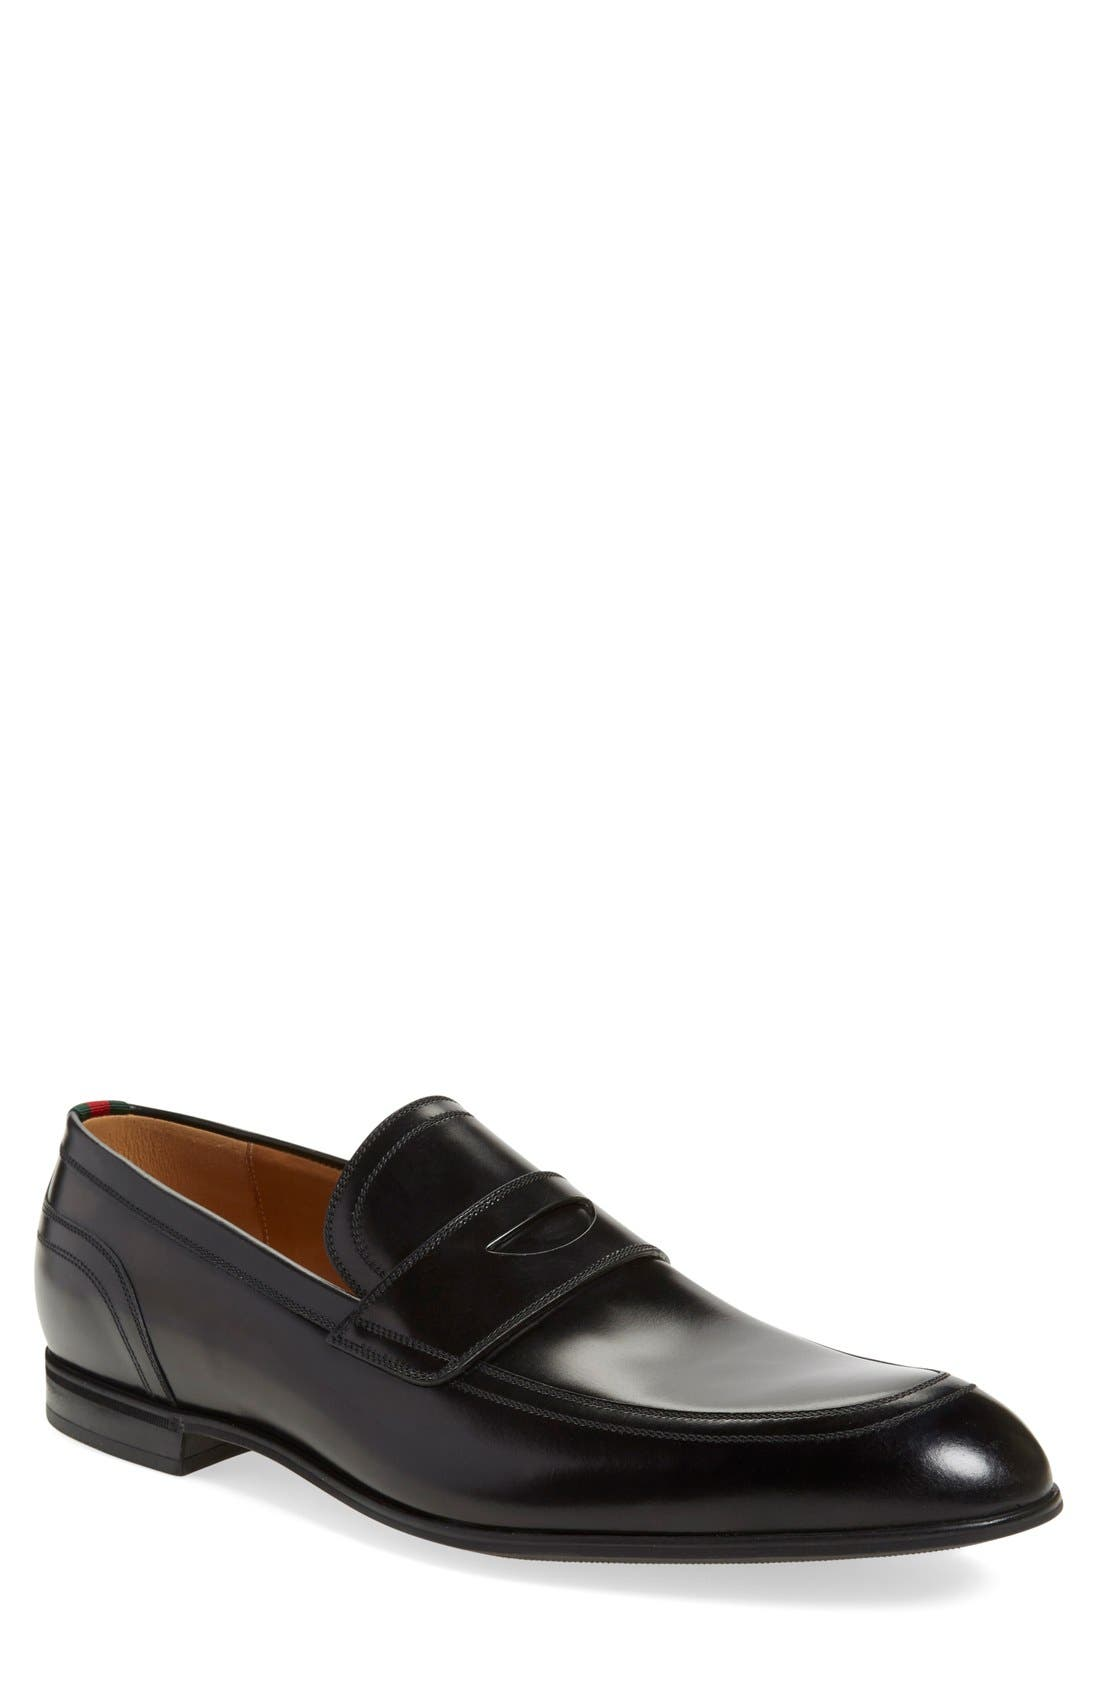 Ravello Penny Loafer,                             Main thumbnail 1, color,